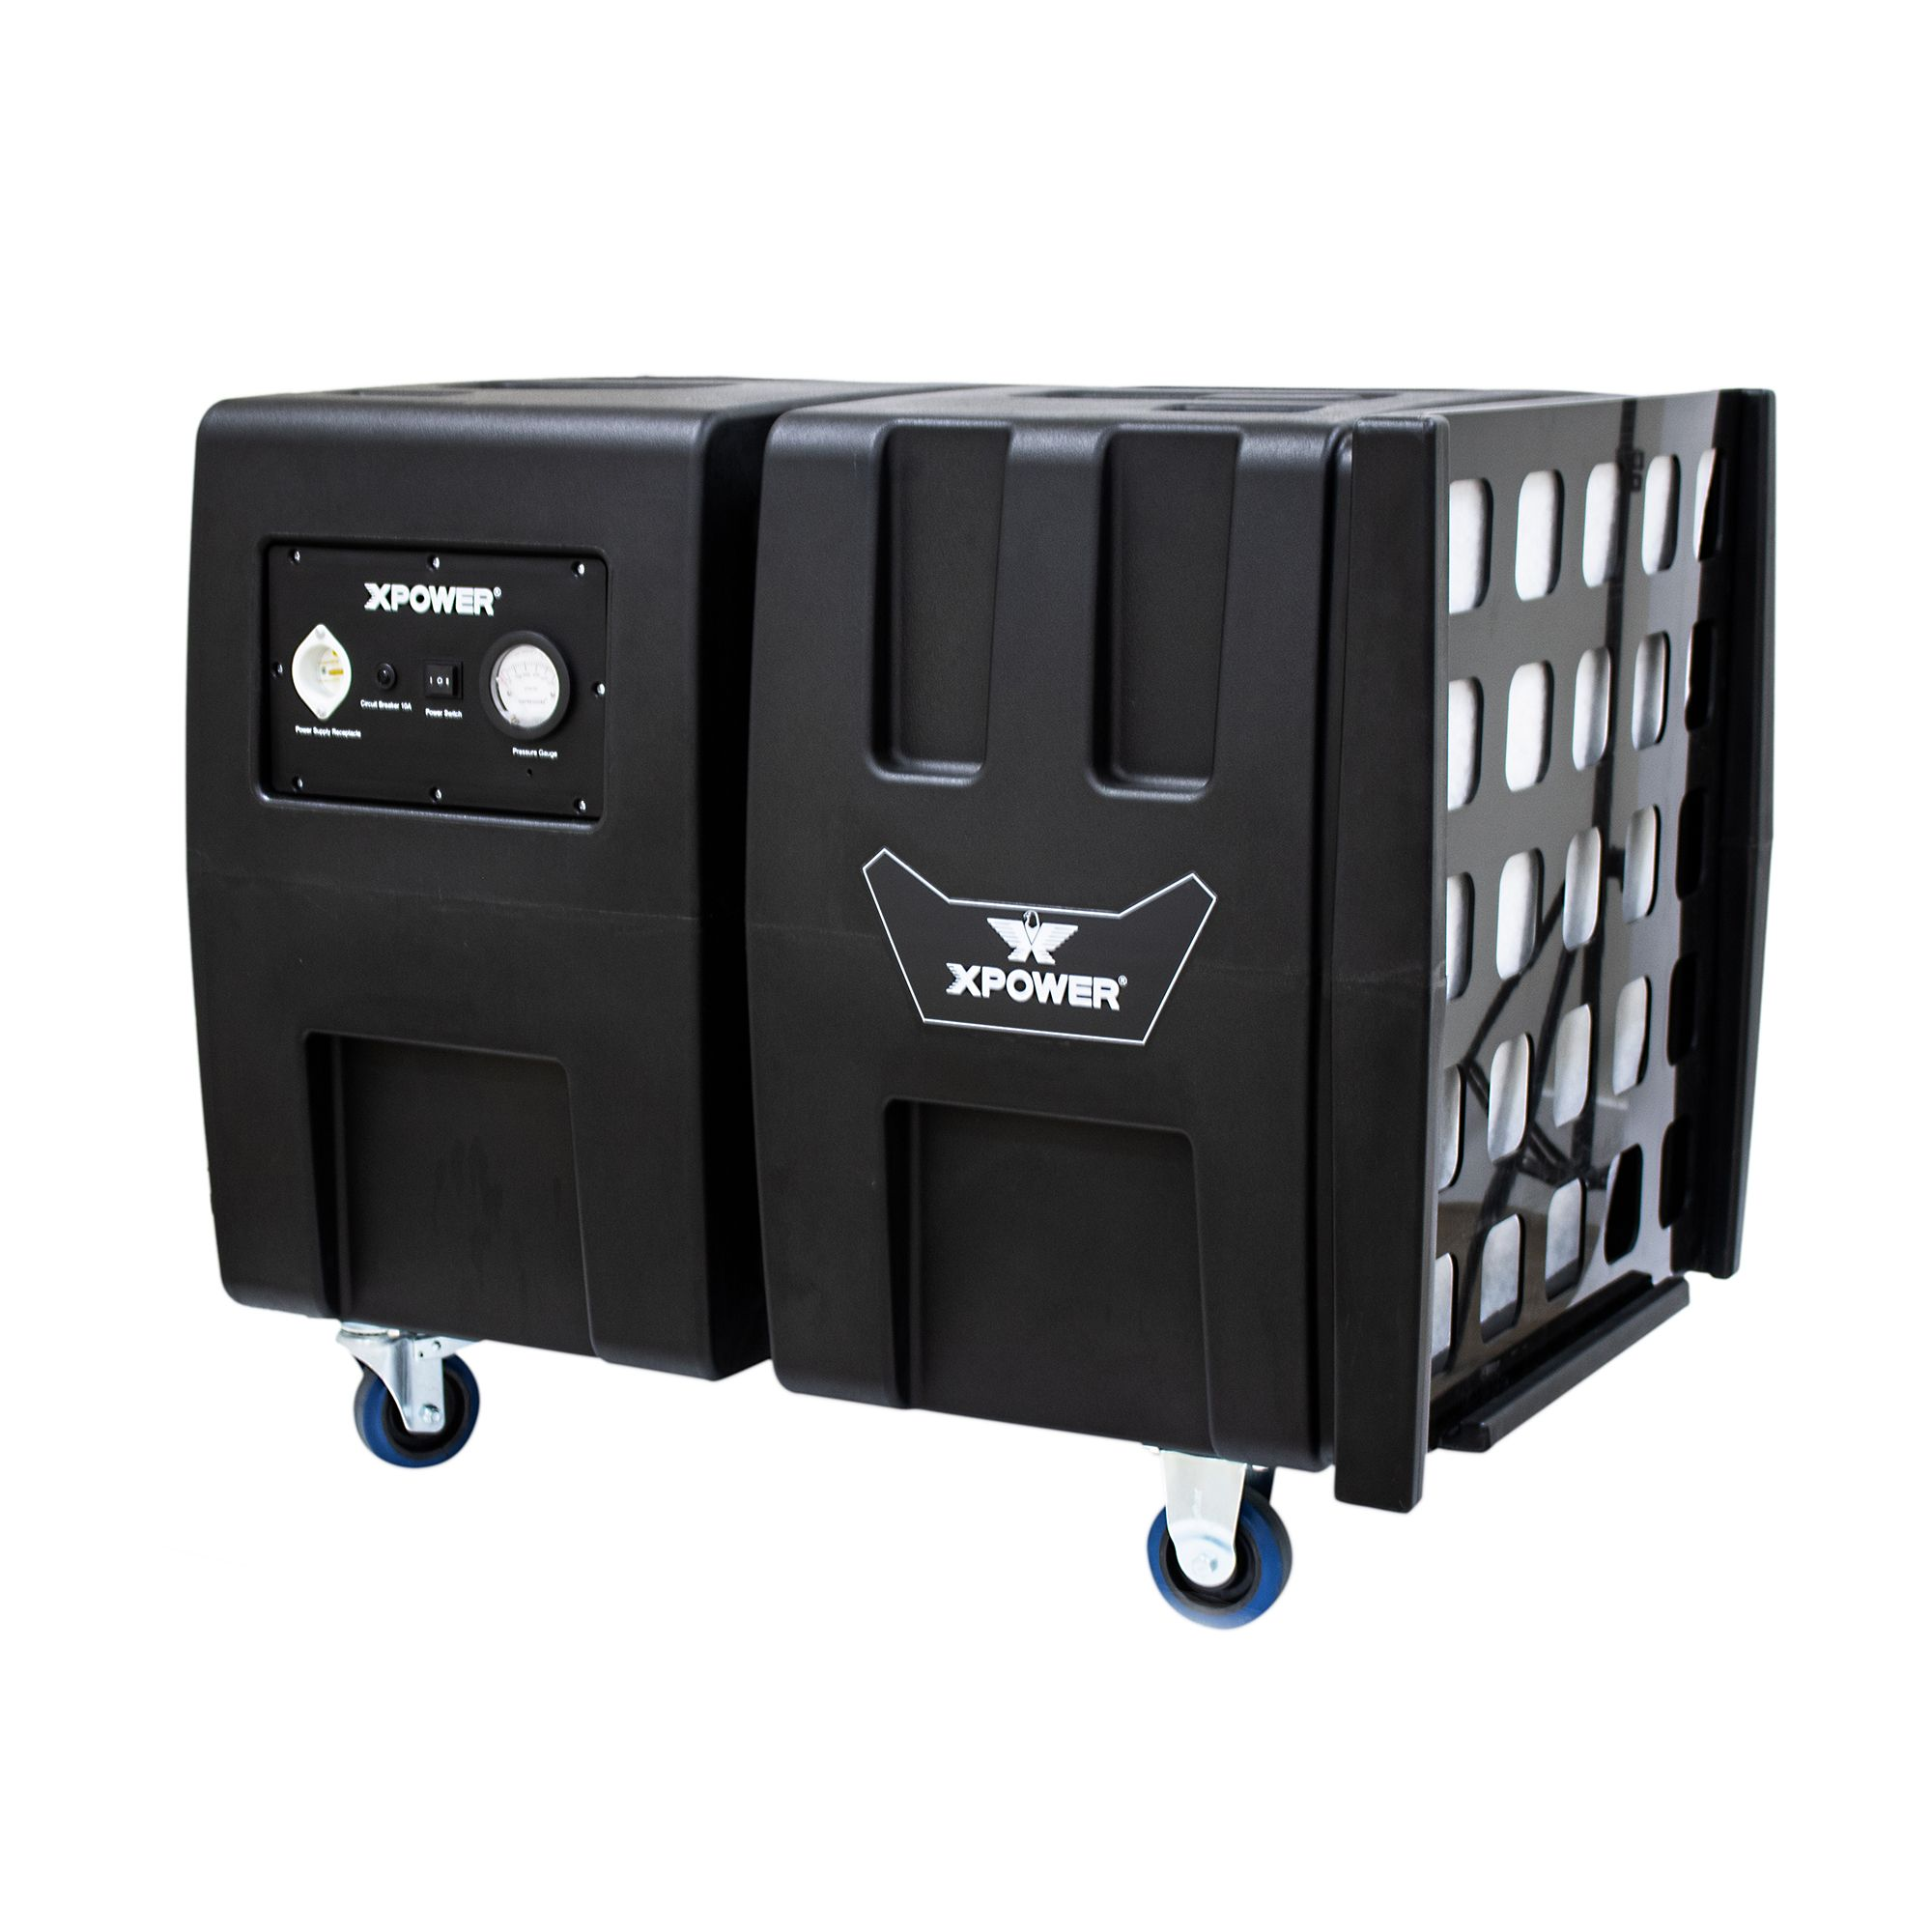 XPOWER AP2000 Portable Industrial HEPA Air Scrubbers for